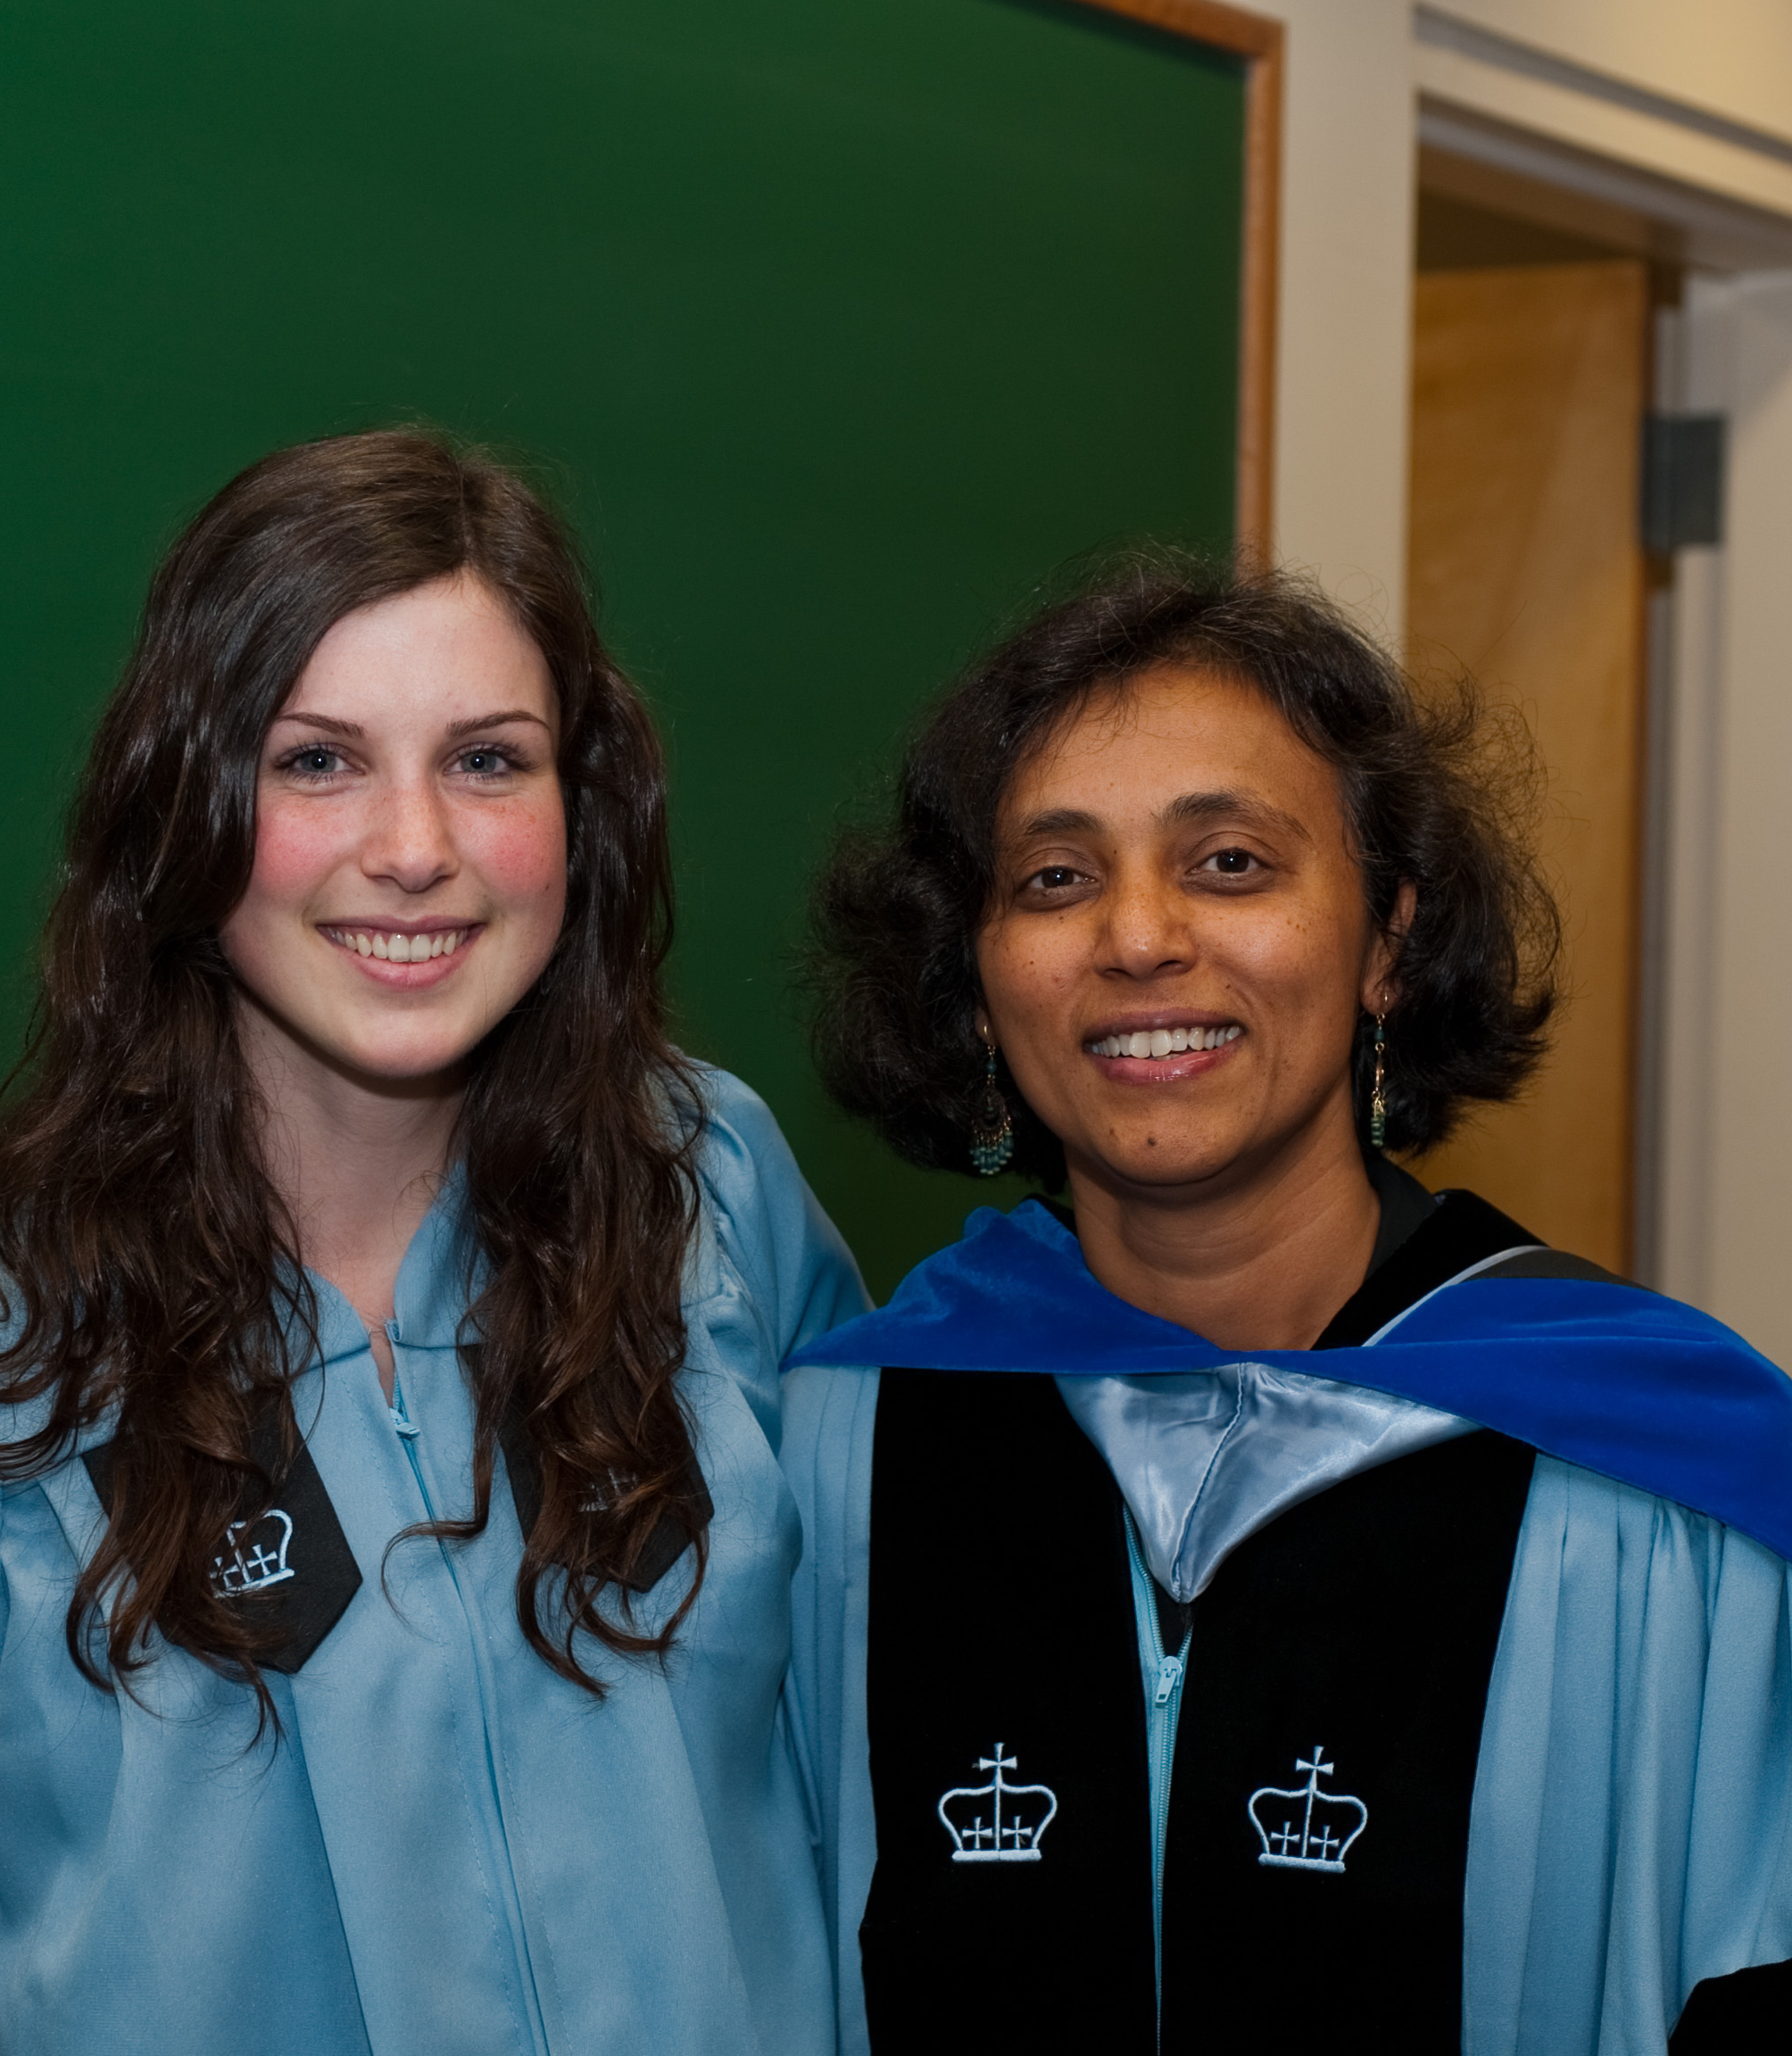 Kara at her Barnard graduation with Mukherjee.